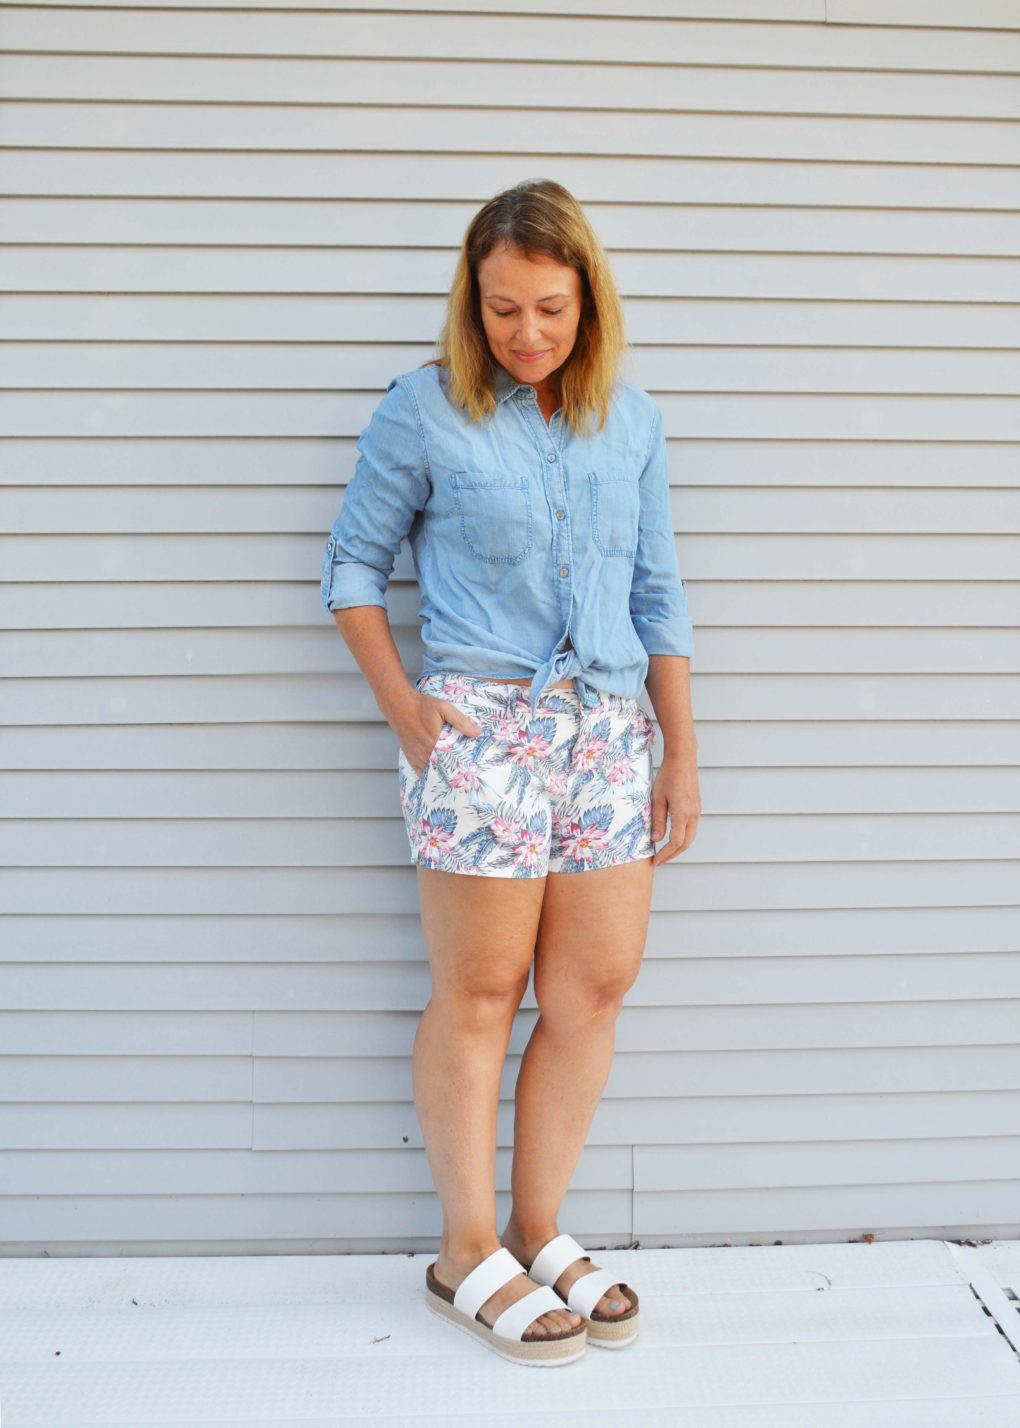 Chambray shirt knotted with floral print shorts